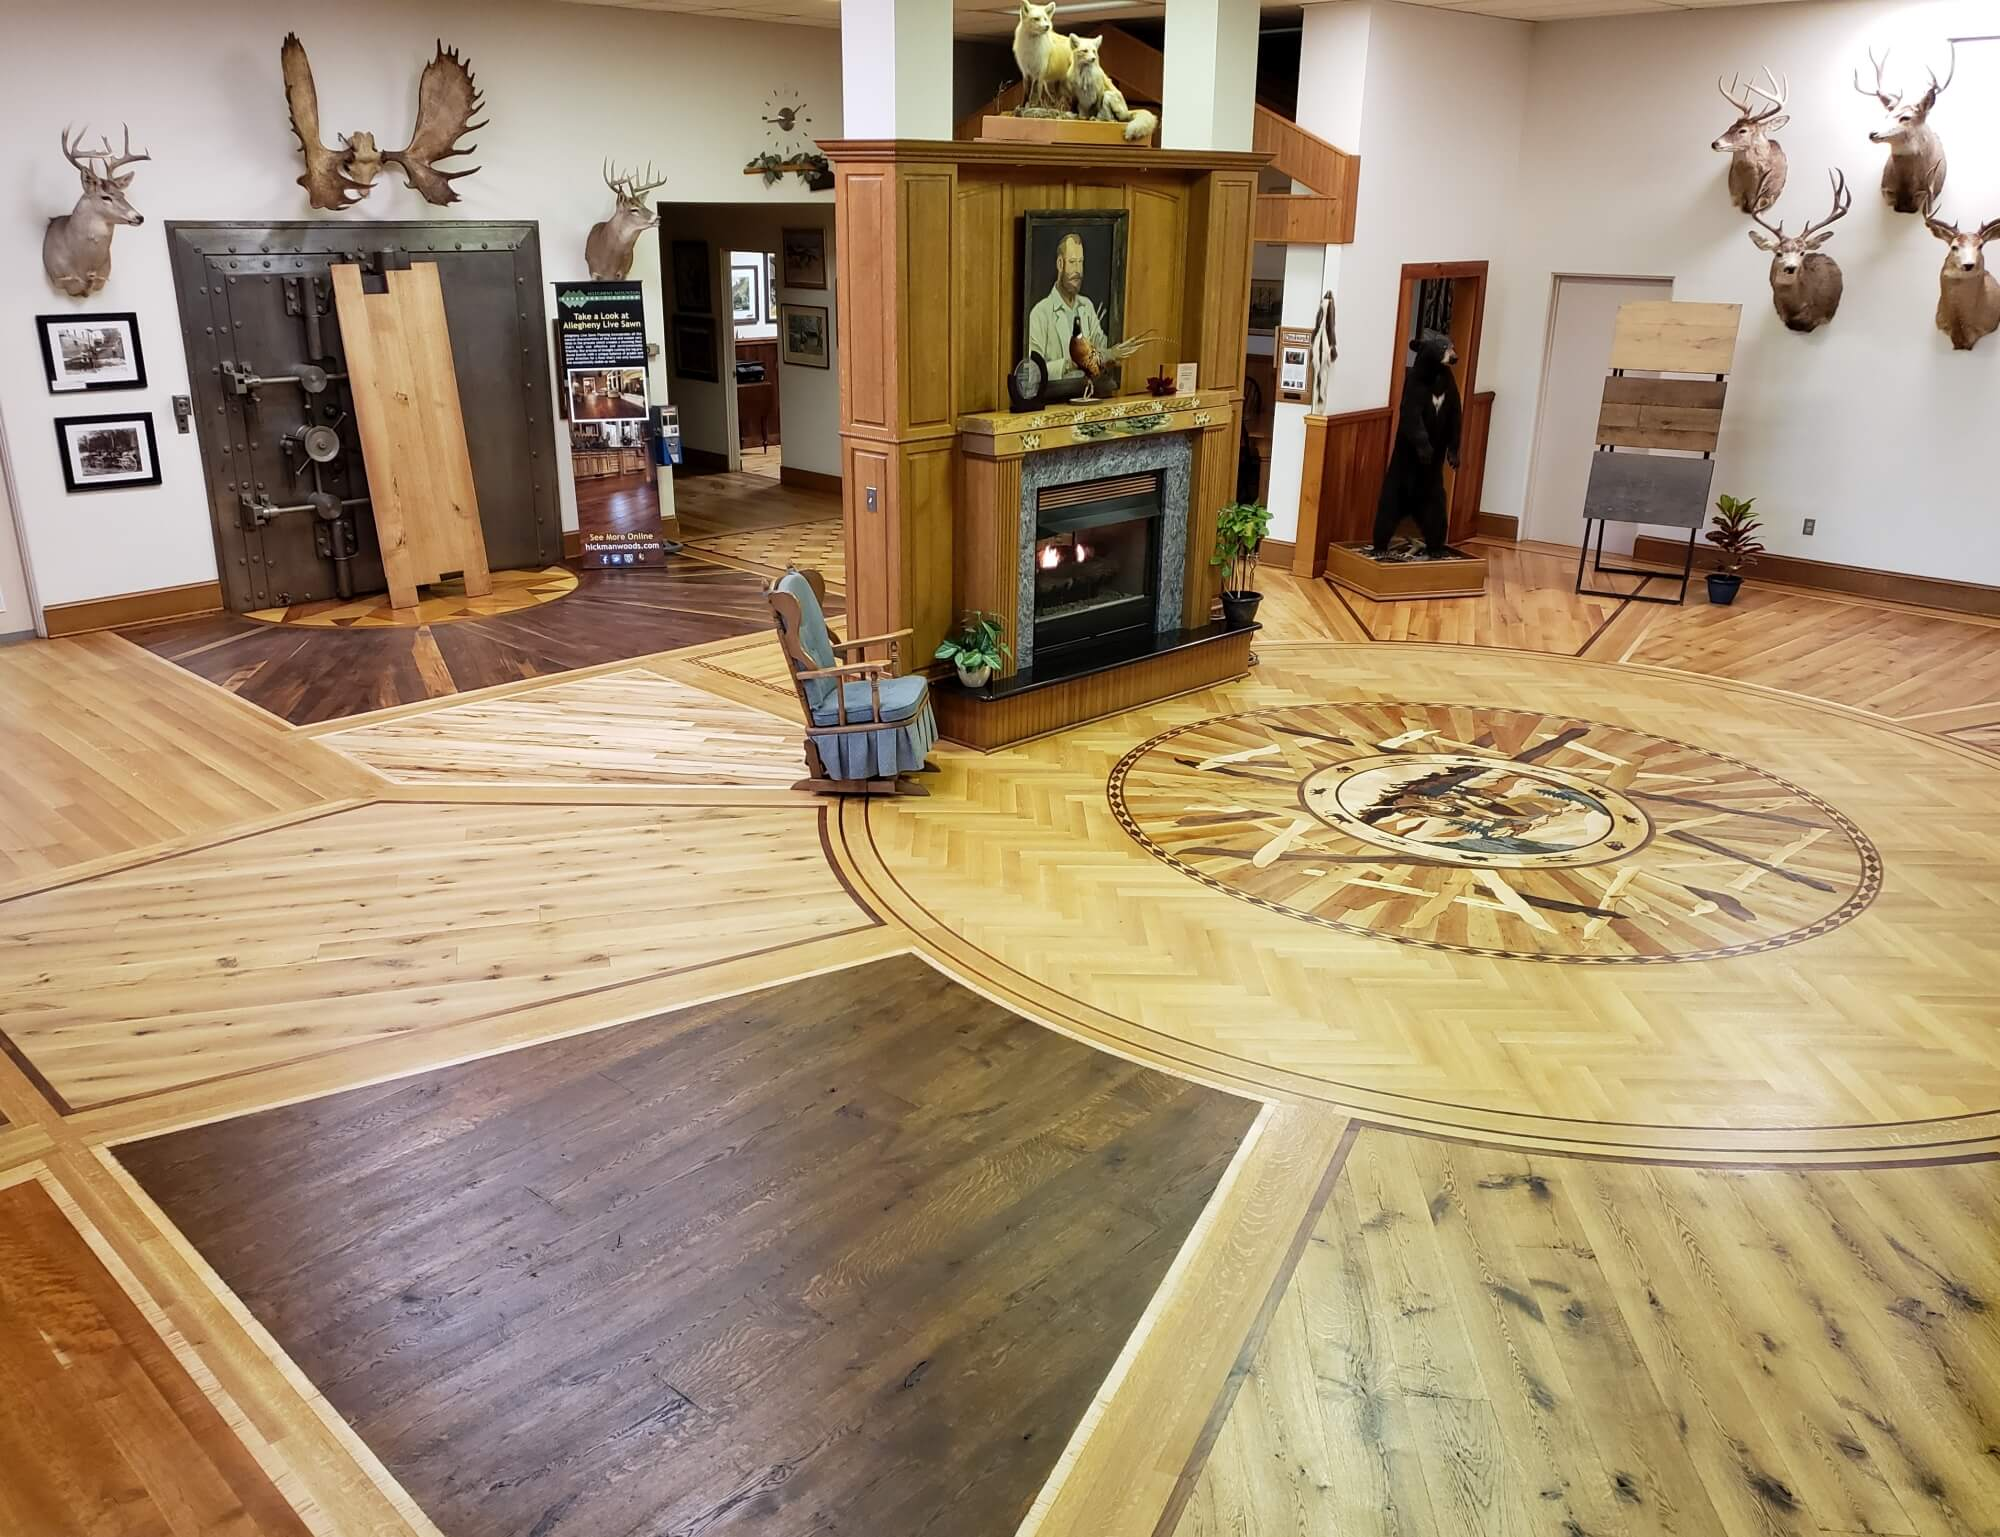 Allegheny Mountain Hardwood Flooring Showroom was finished using Rubio Monocoat by Hickman Woods.